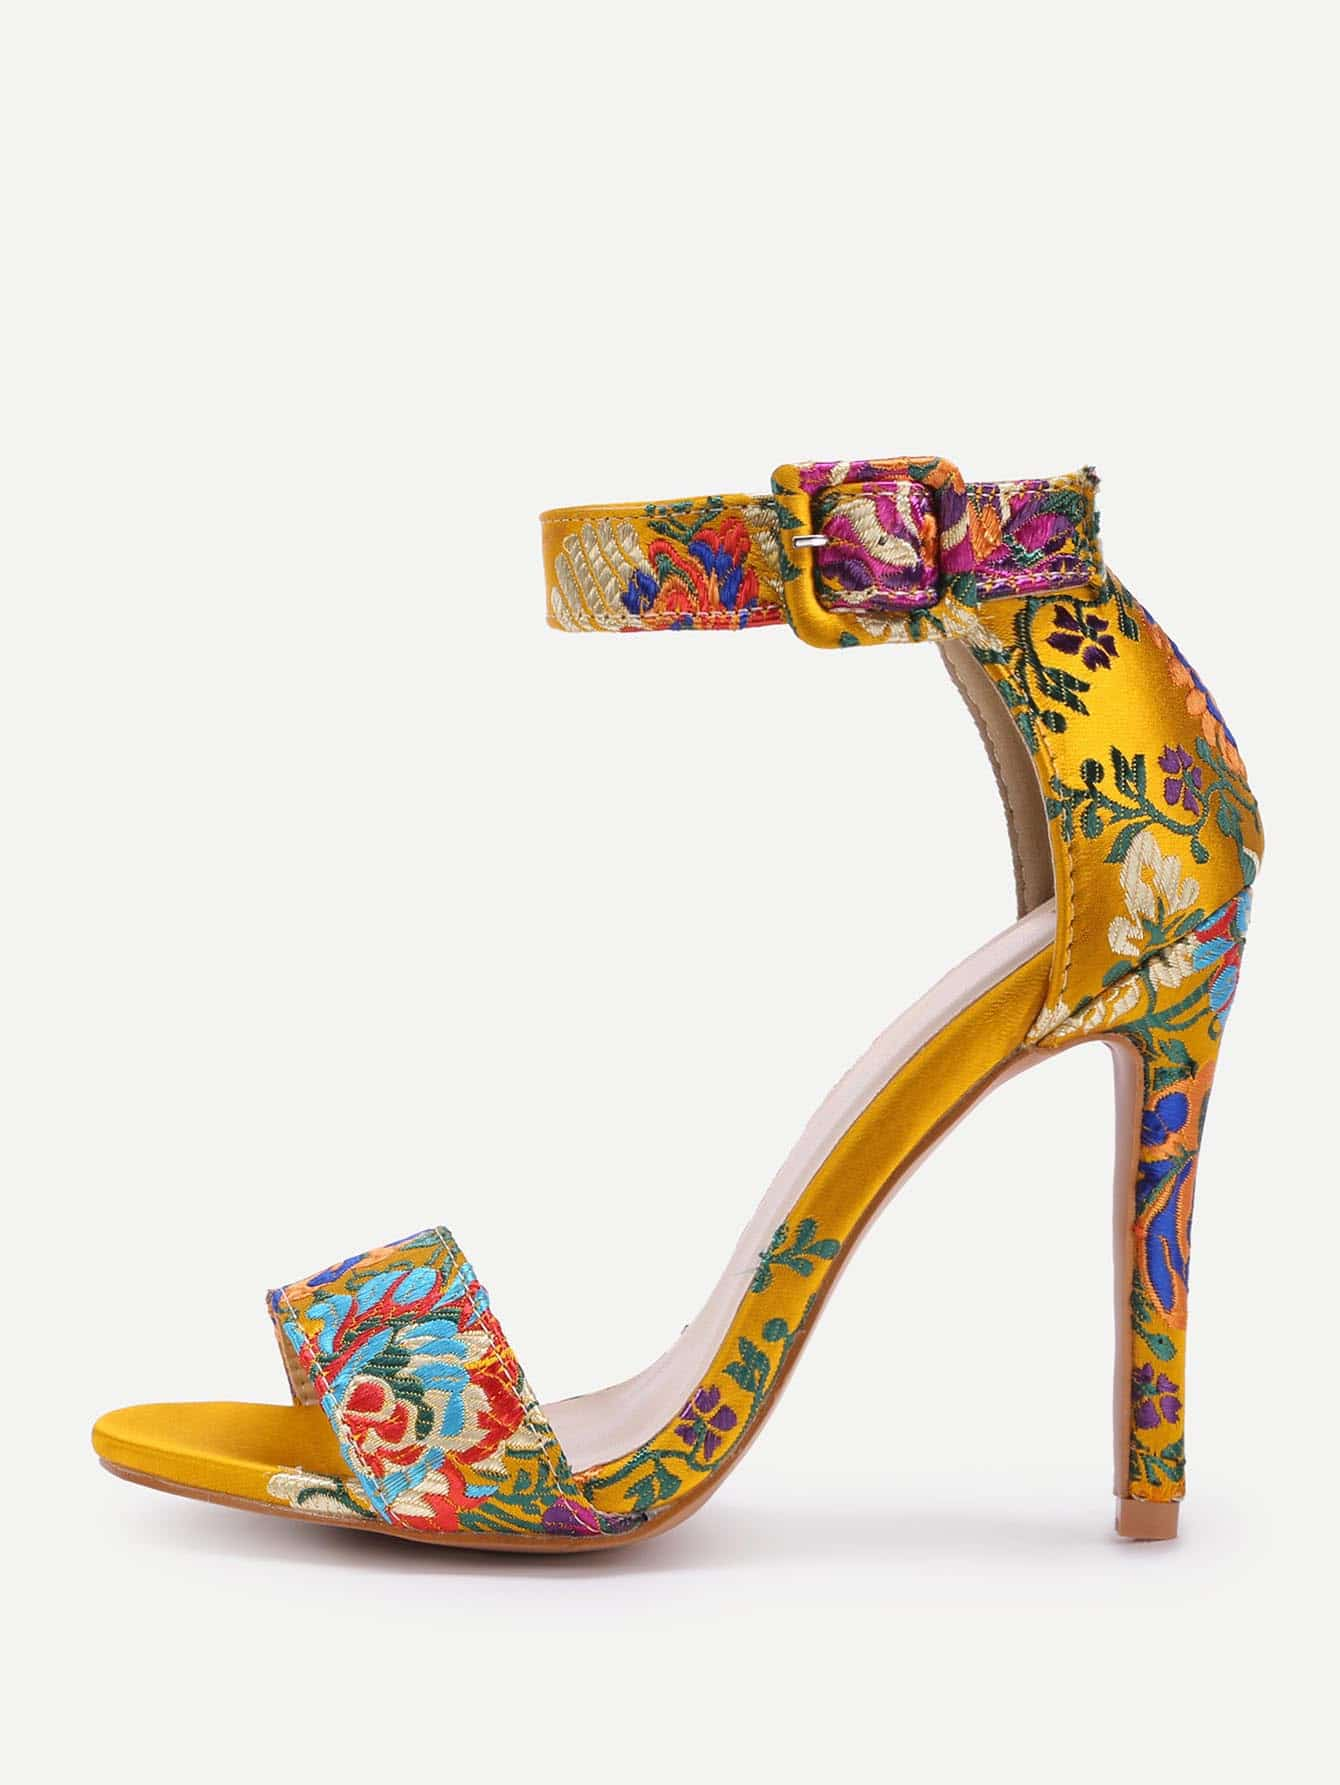 Flower Pattern Ankle Strap High Heel Sandals shoes170825332